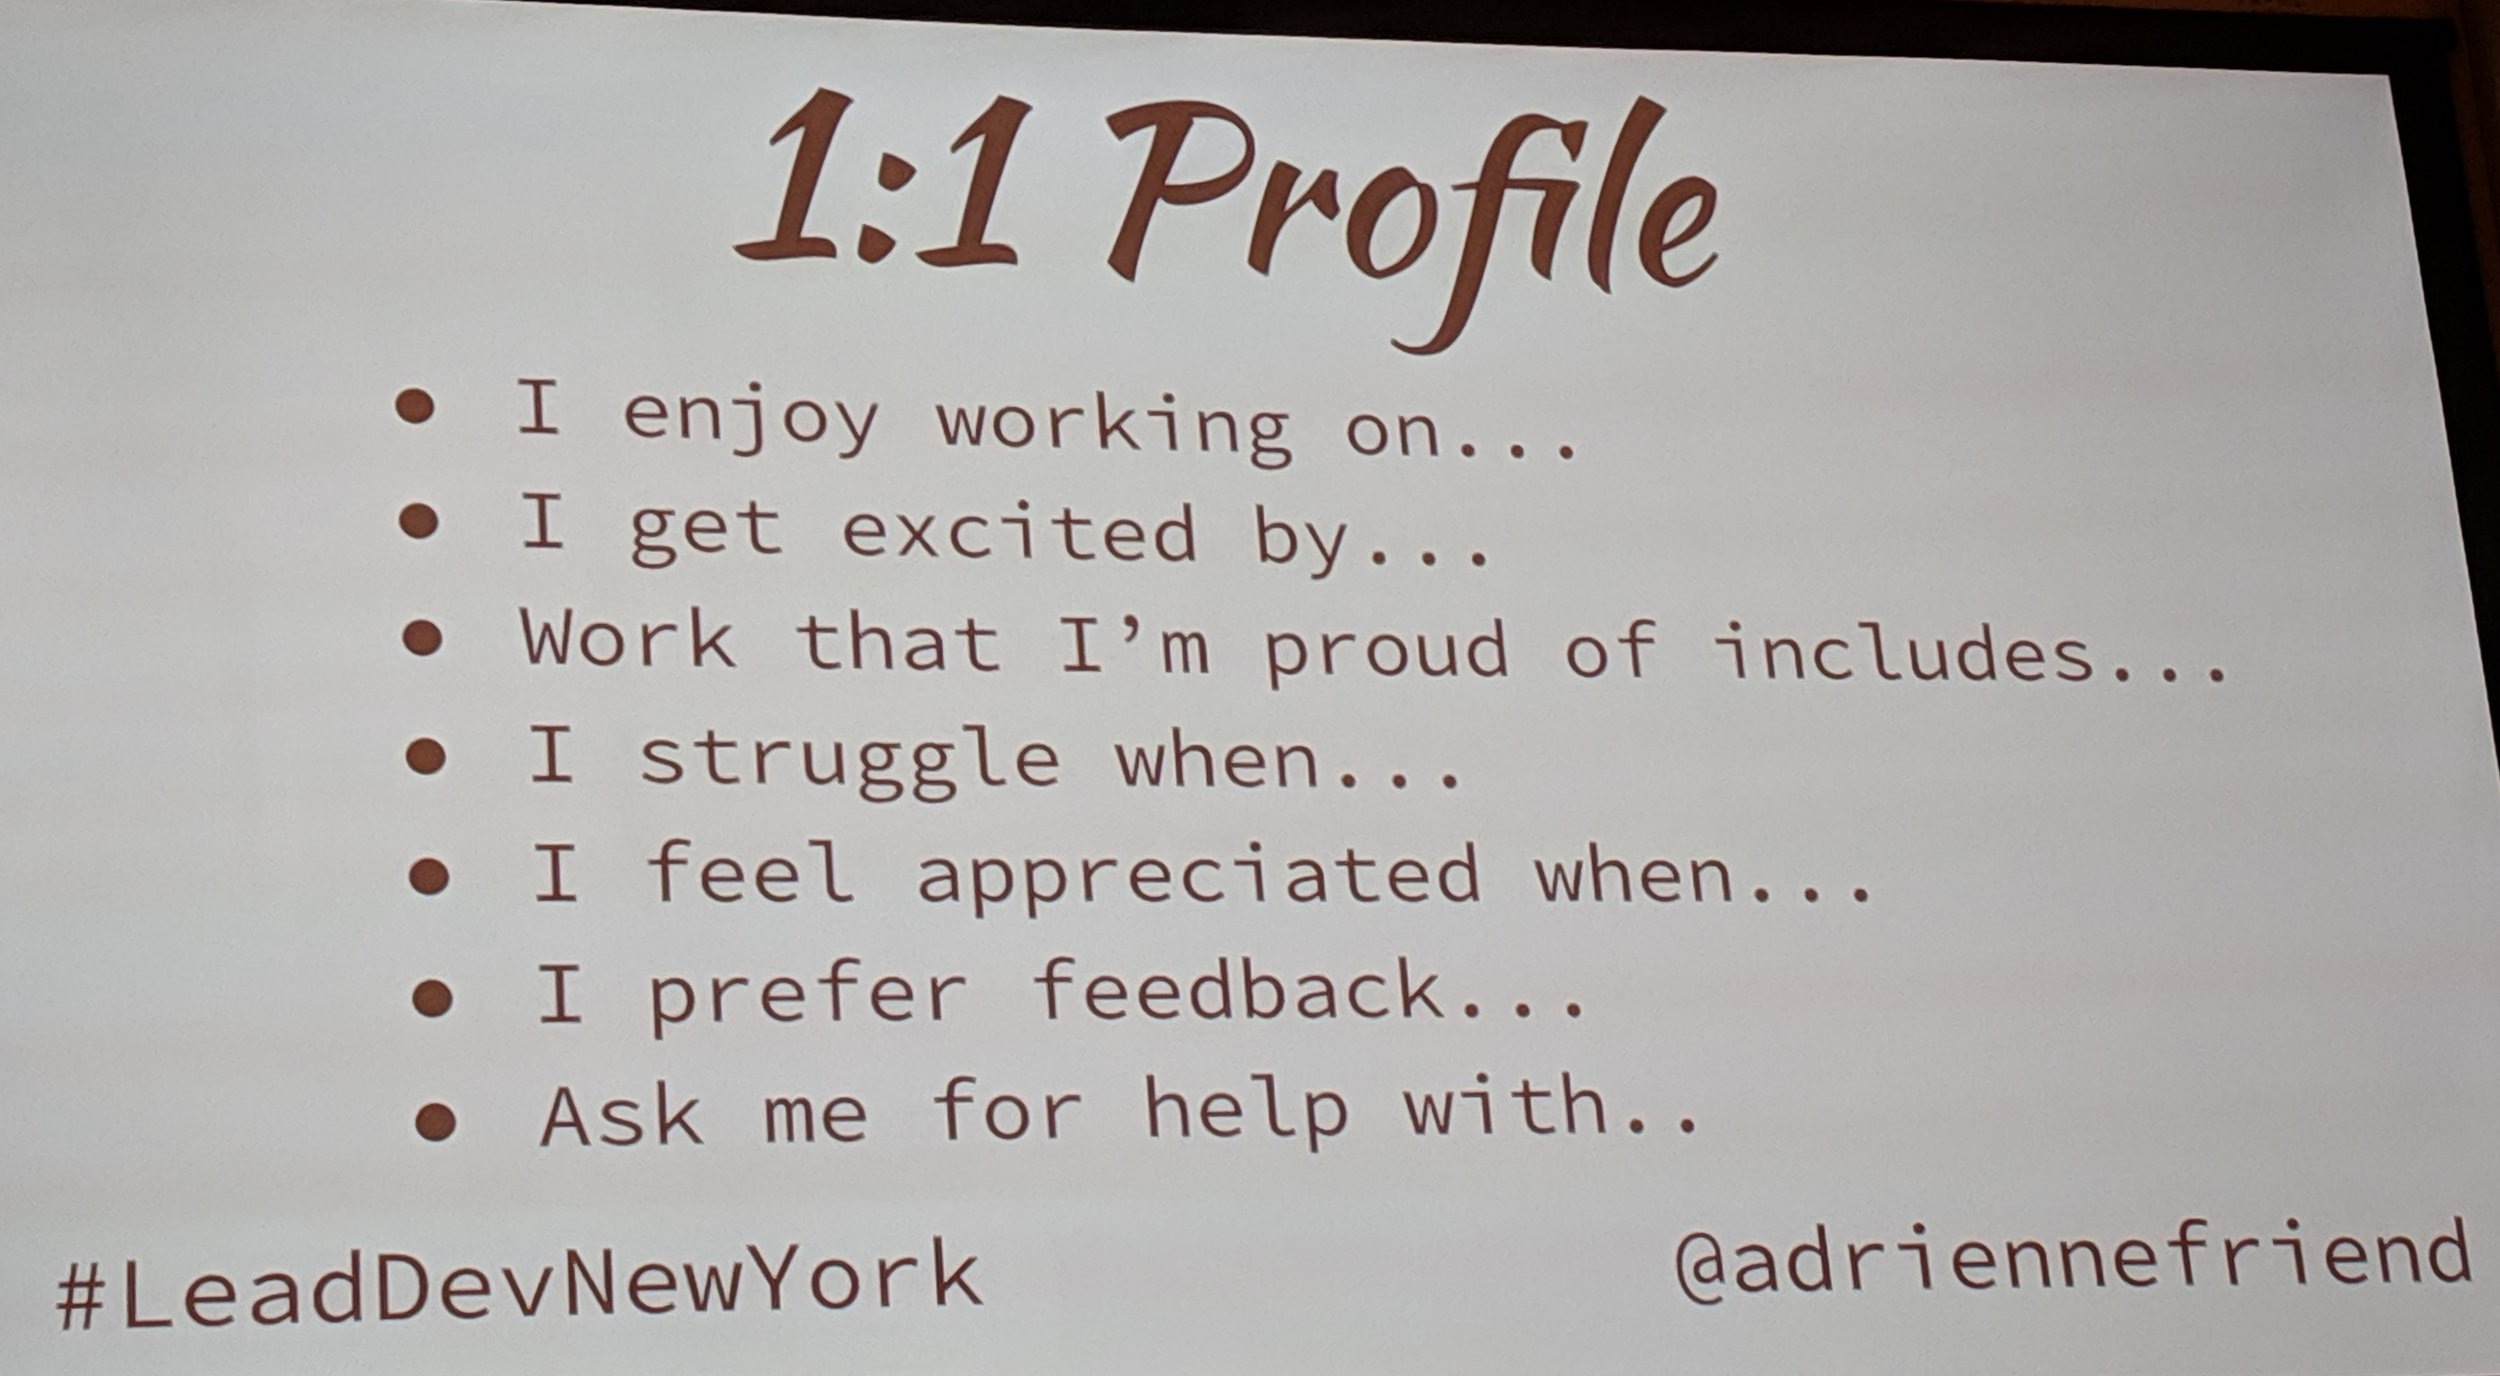 Adrienne's template for a 1:1 profile:  * I enjoy working on… * I get excited by… * Work that I'm proud of includes… * I struggle when… * I feel appreciated when… * I prefer feedback… * Ask me for help with…